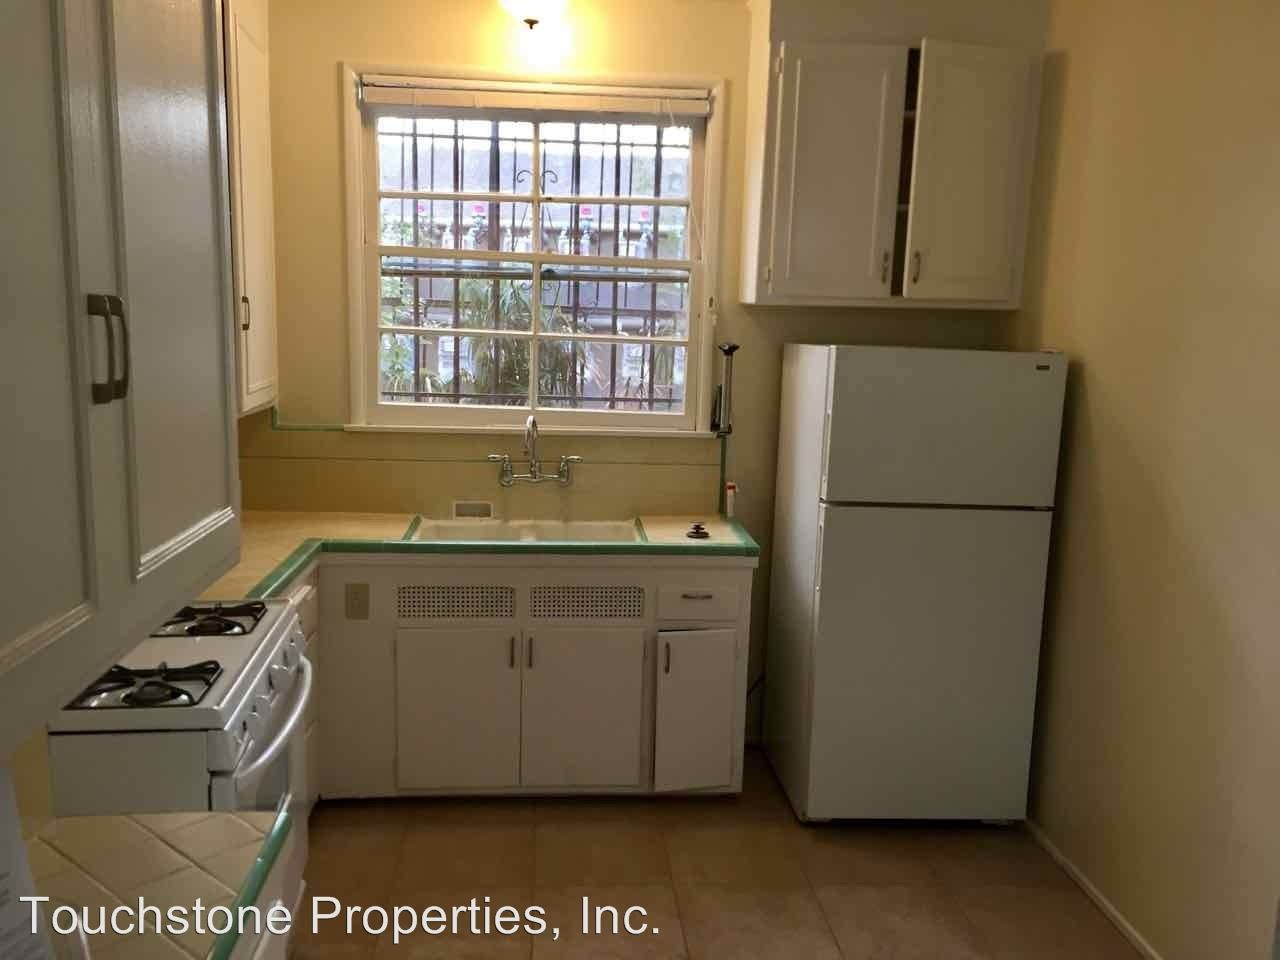 617 N Rossmore Ave, Los Angeles, CA 90004 - Apartment for Rent ...